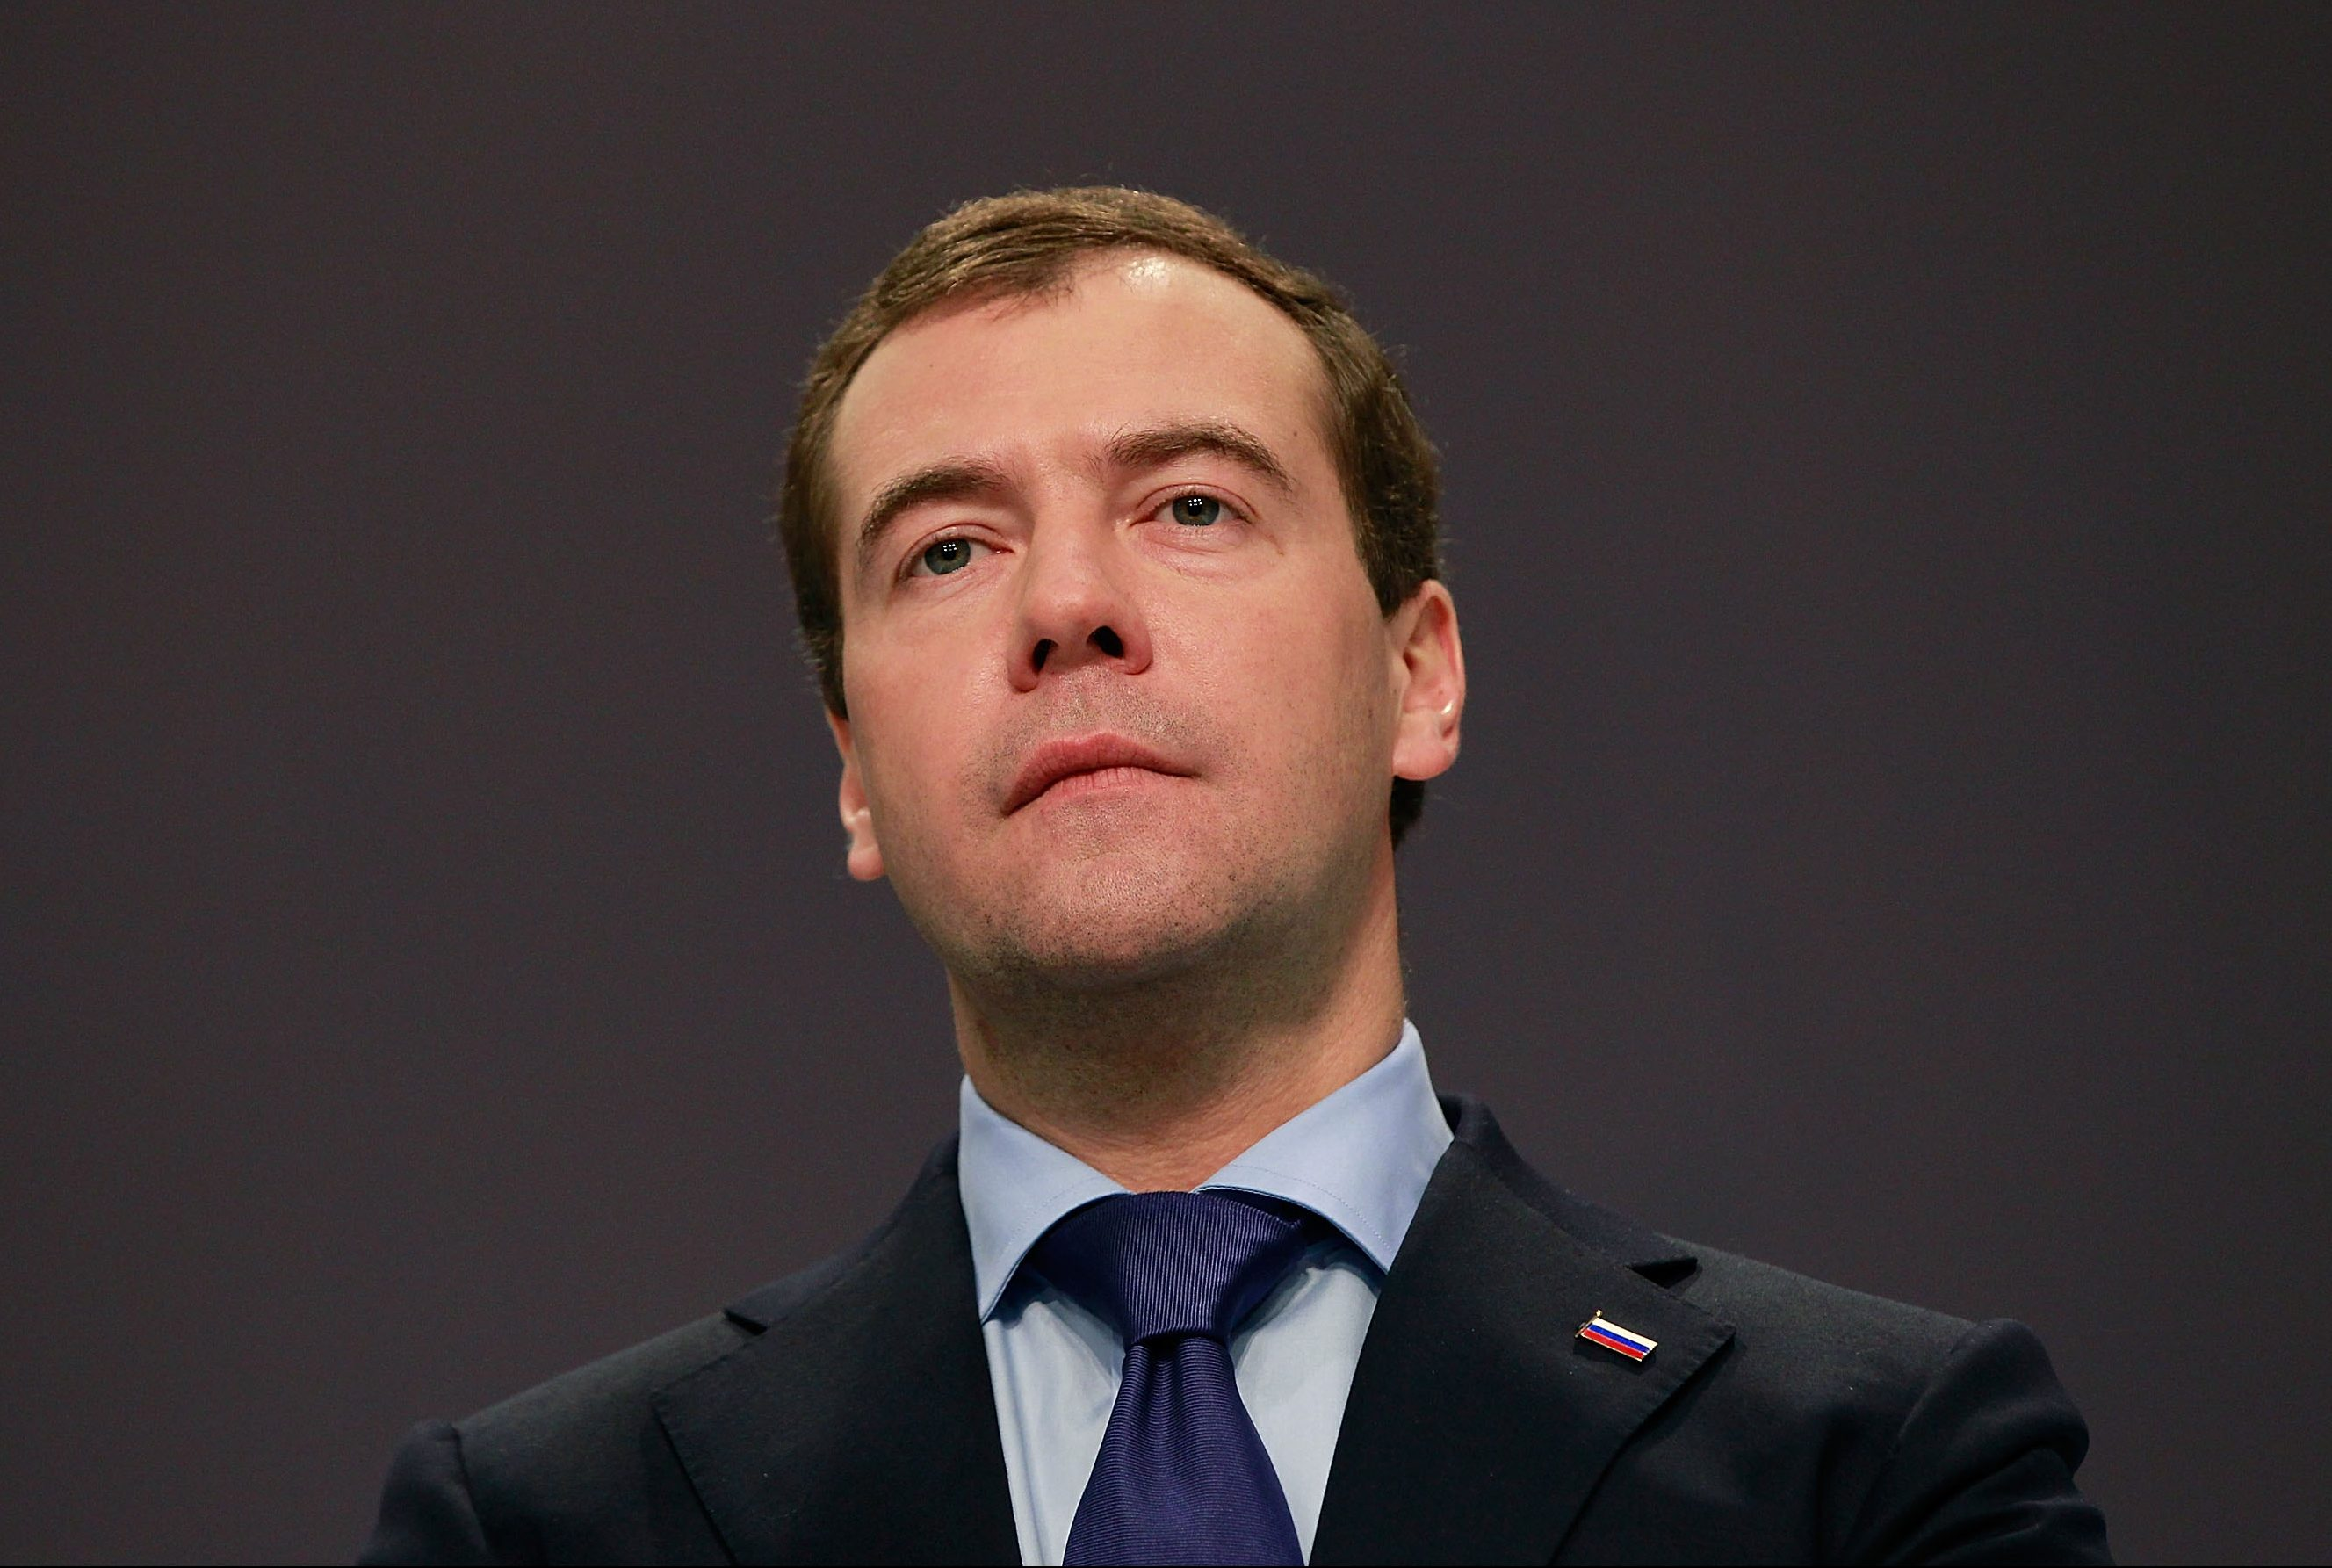 LISBON, PORTUGAL - NOVEMBER 20:  Russian President Dmitry Medvedev speaks to the media during a press conference on day two of the NATO summit at Feira Internacional de Lisboa (FIL) on November 20, 2010 in Lisbon, Portugal. The two day summit will address issues including a new strategic concept for NATO. Britain and the US will also seek an agreement to hand over responsibility for security in Afghanistan to local forces over the next four years.  (Photo by Sean Gallup/Getty Images)